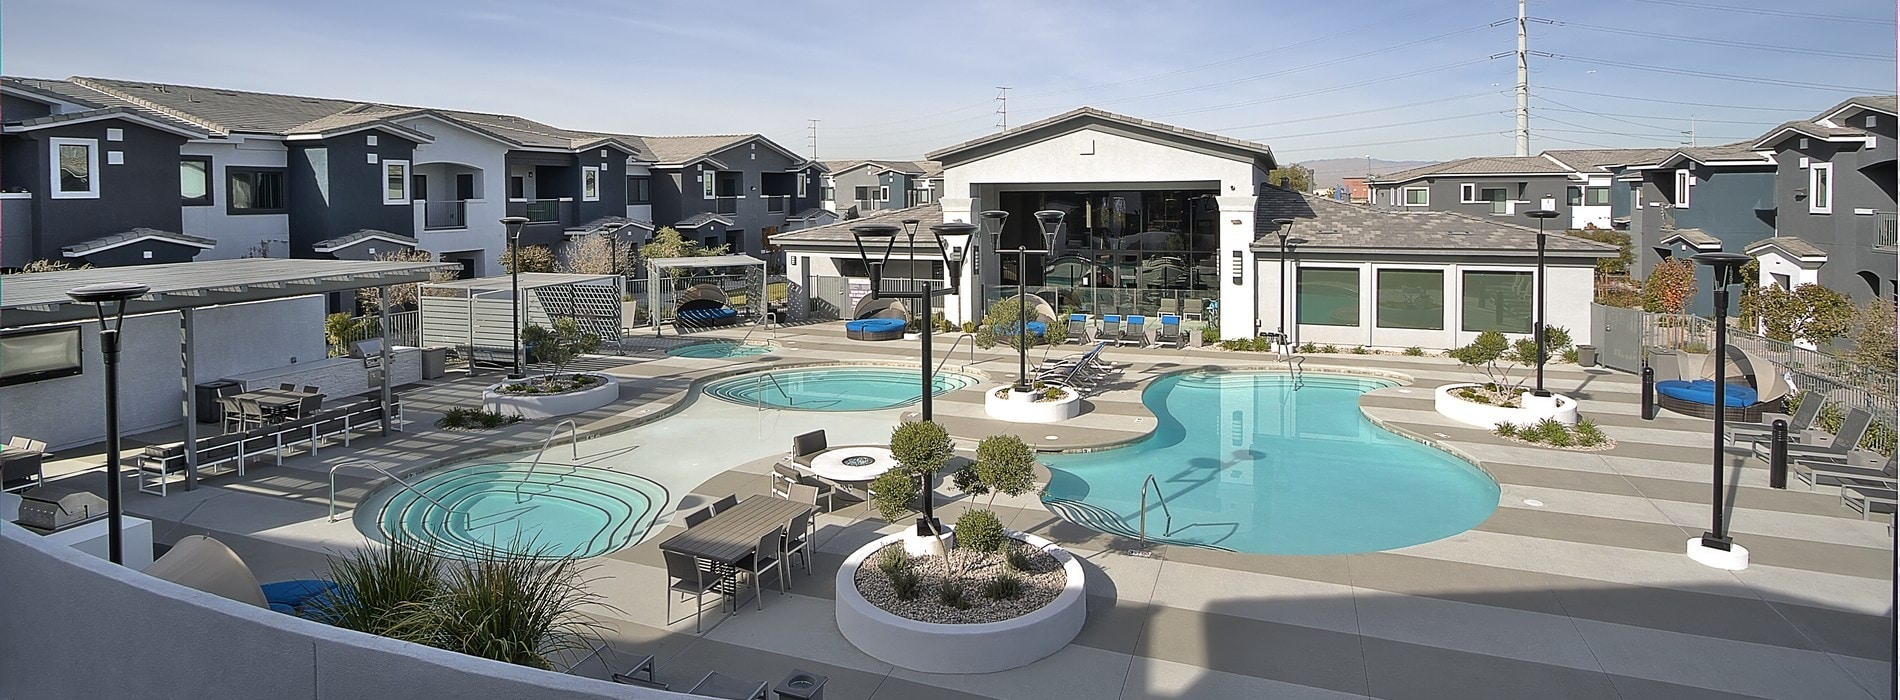 dream apartments henderson, nv - 1, 2 & 3 bedrooms